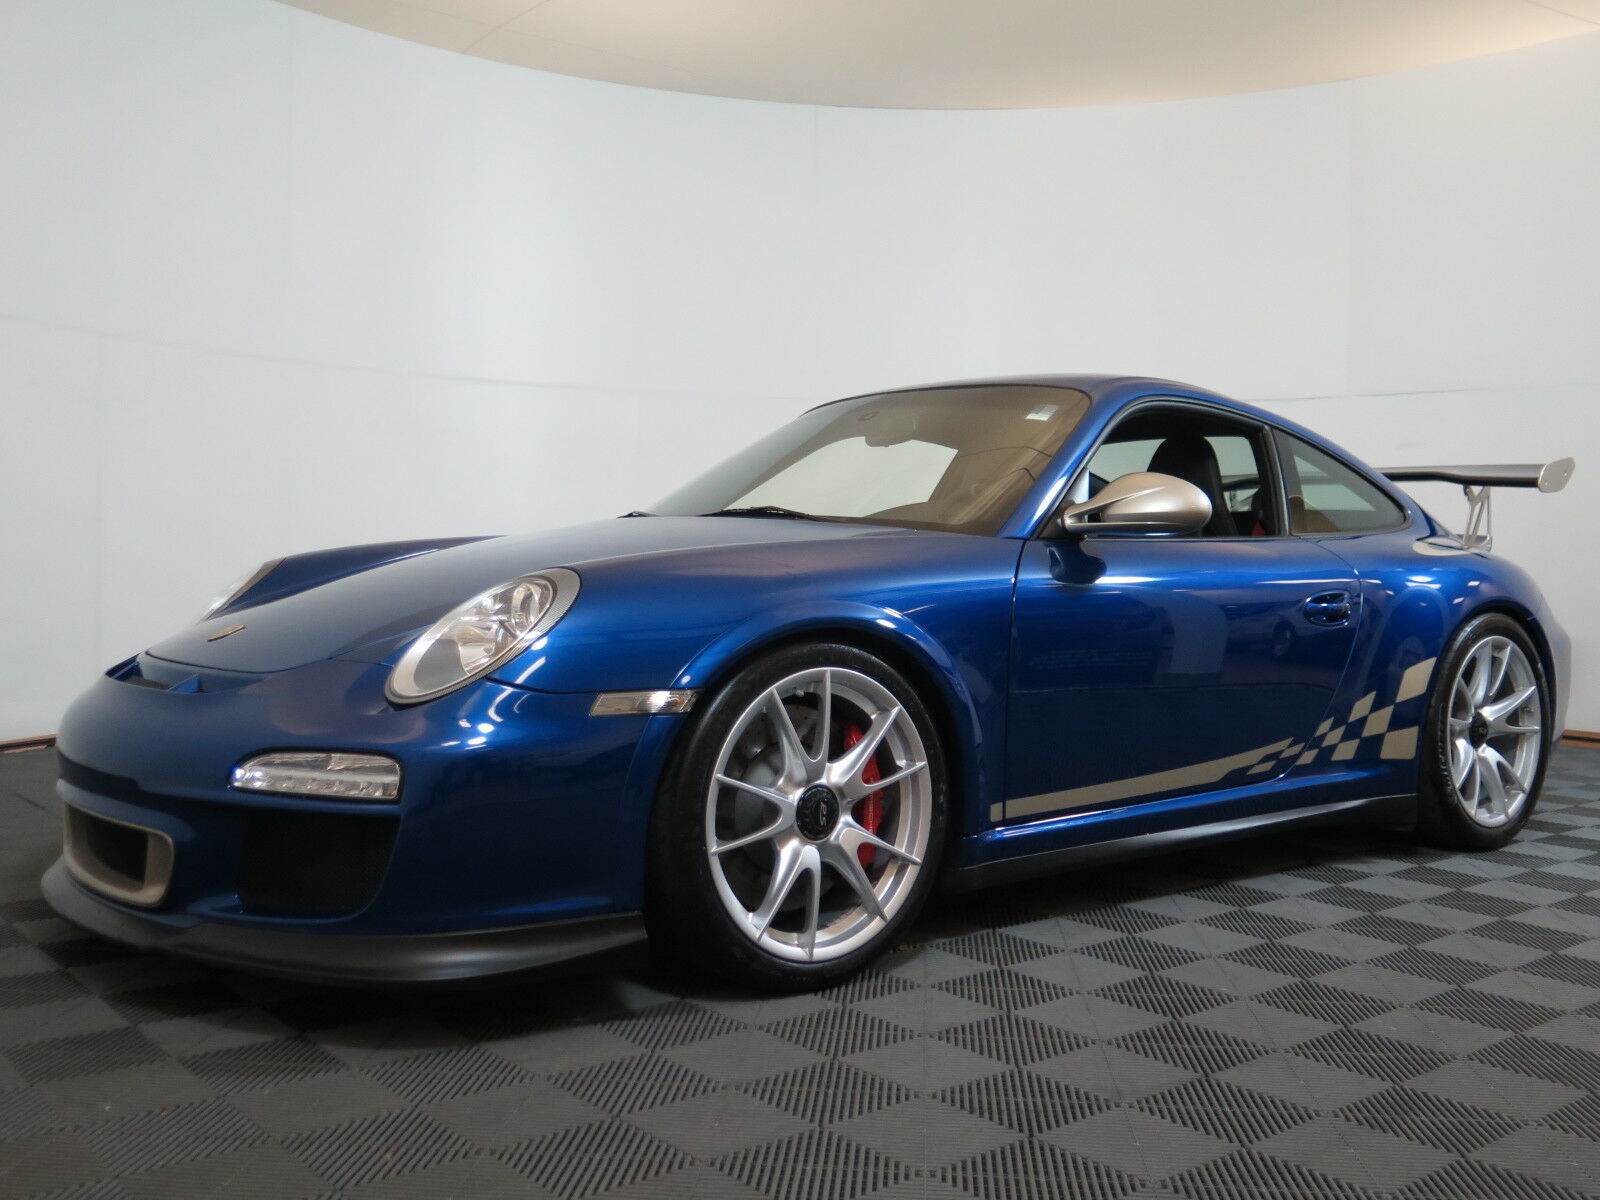 2011 porsche gt3 rs used porsche 911 for sale in miami florida used car lookup. Black Bedroom Furniture Sets. Home Design Ideas